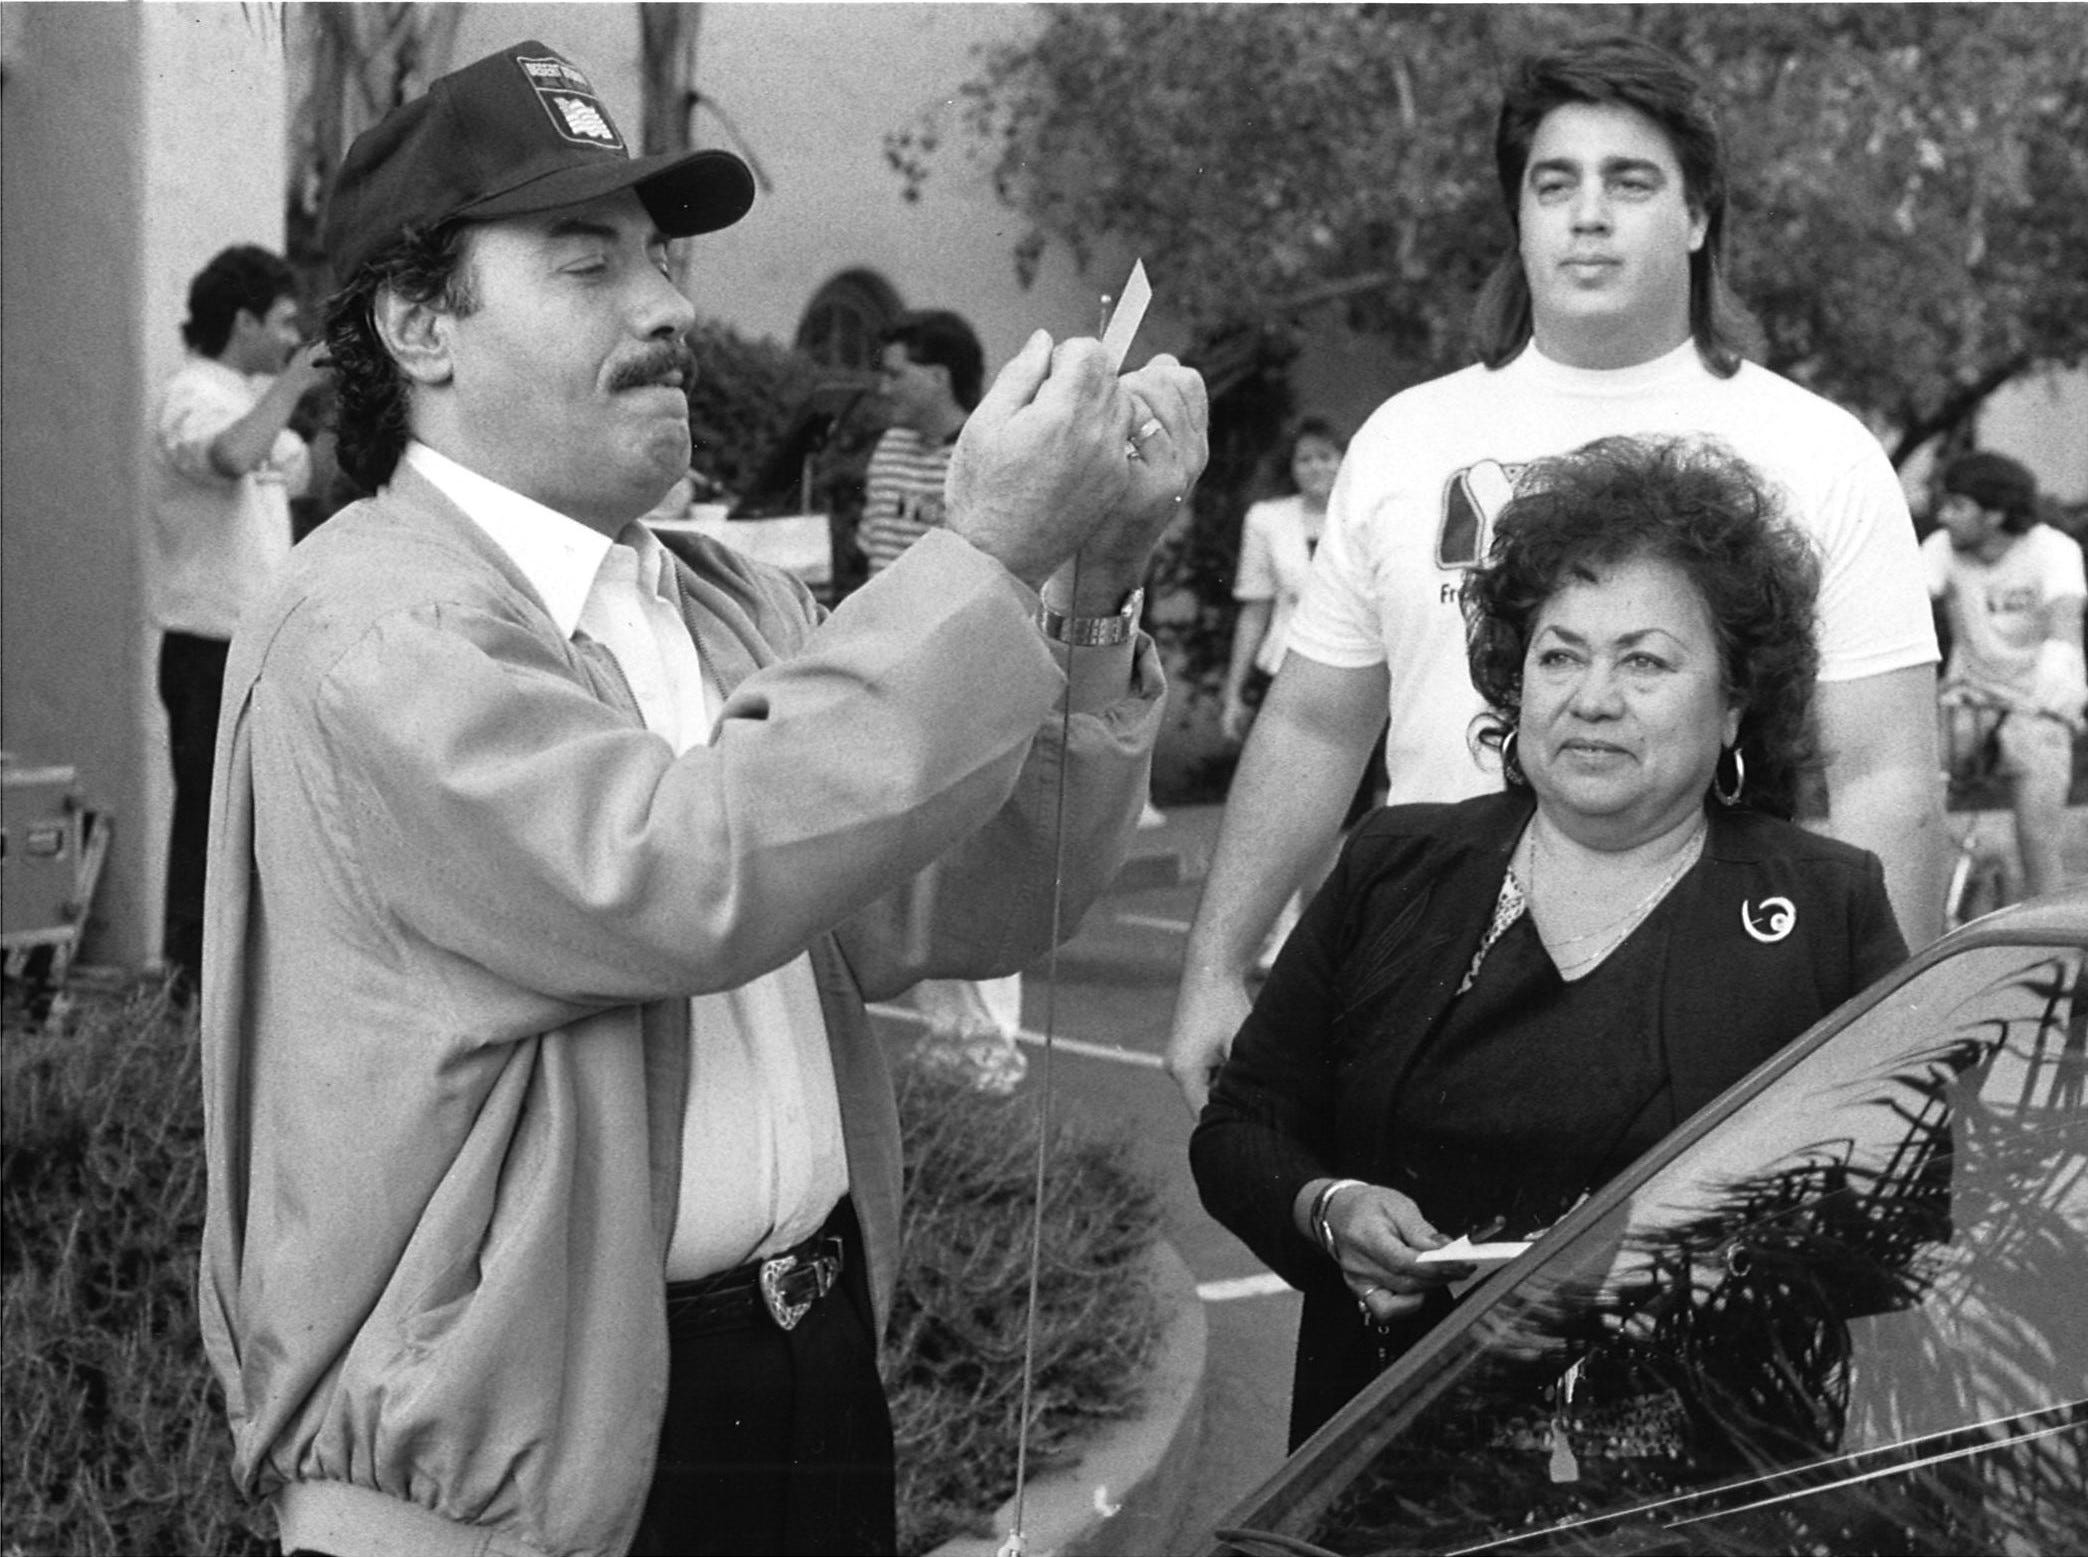 In 1991, Tony Orlando paid a visit to KOY-AM in Phoenix and tied a yellow ribbon on fan Susan Sesma's car.